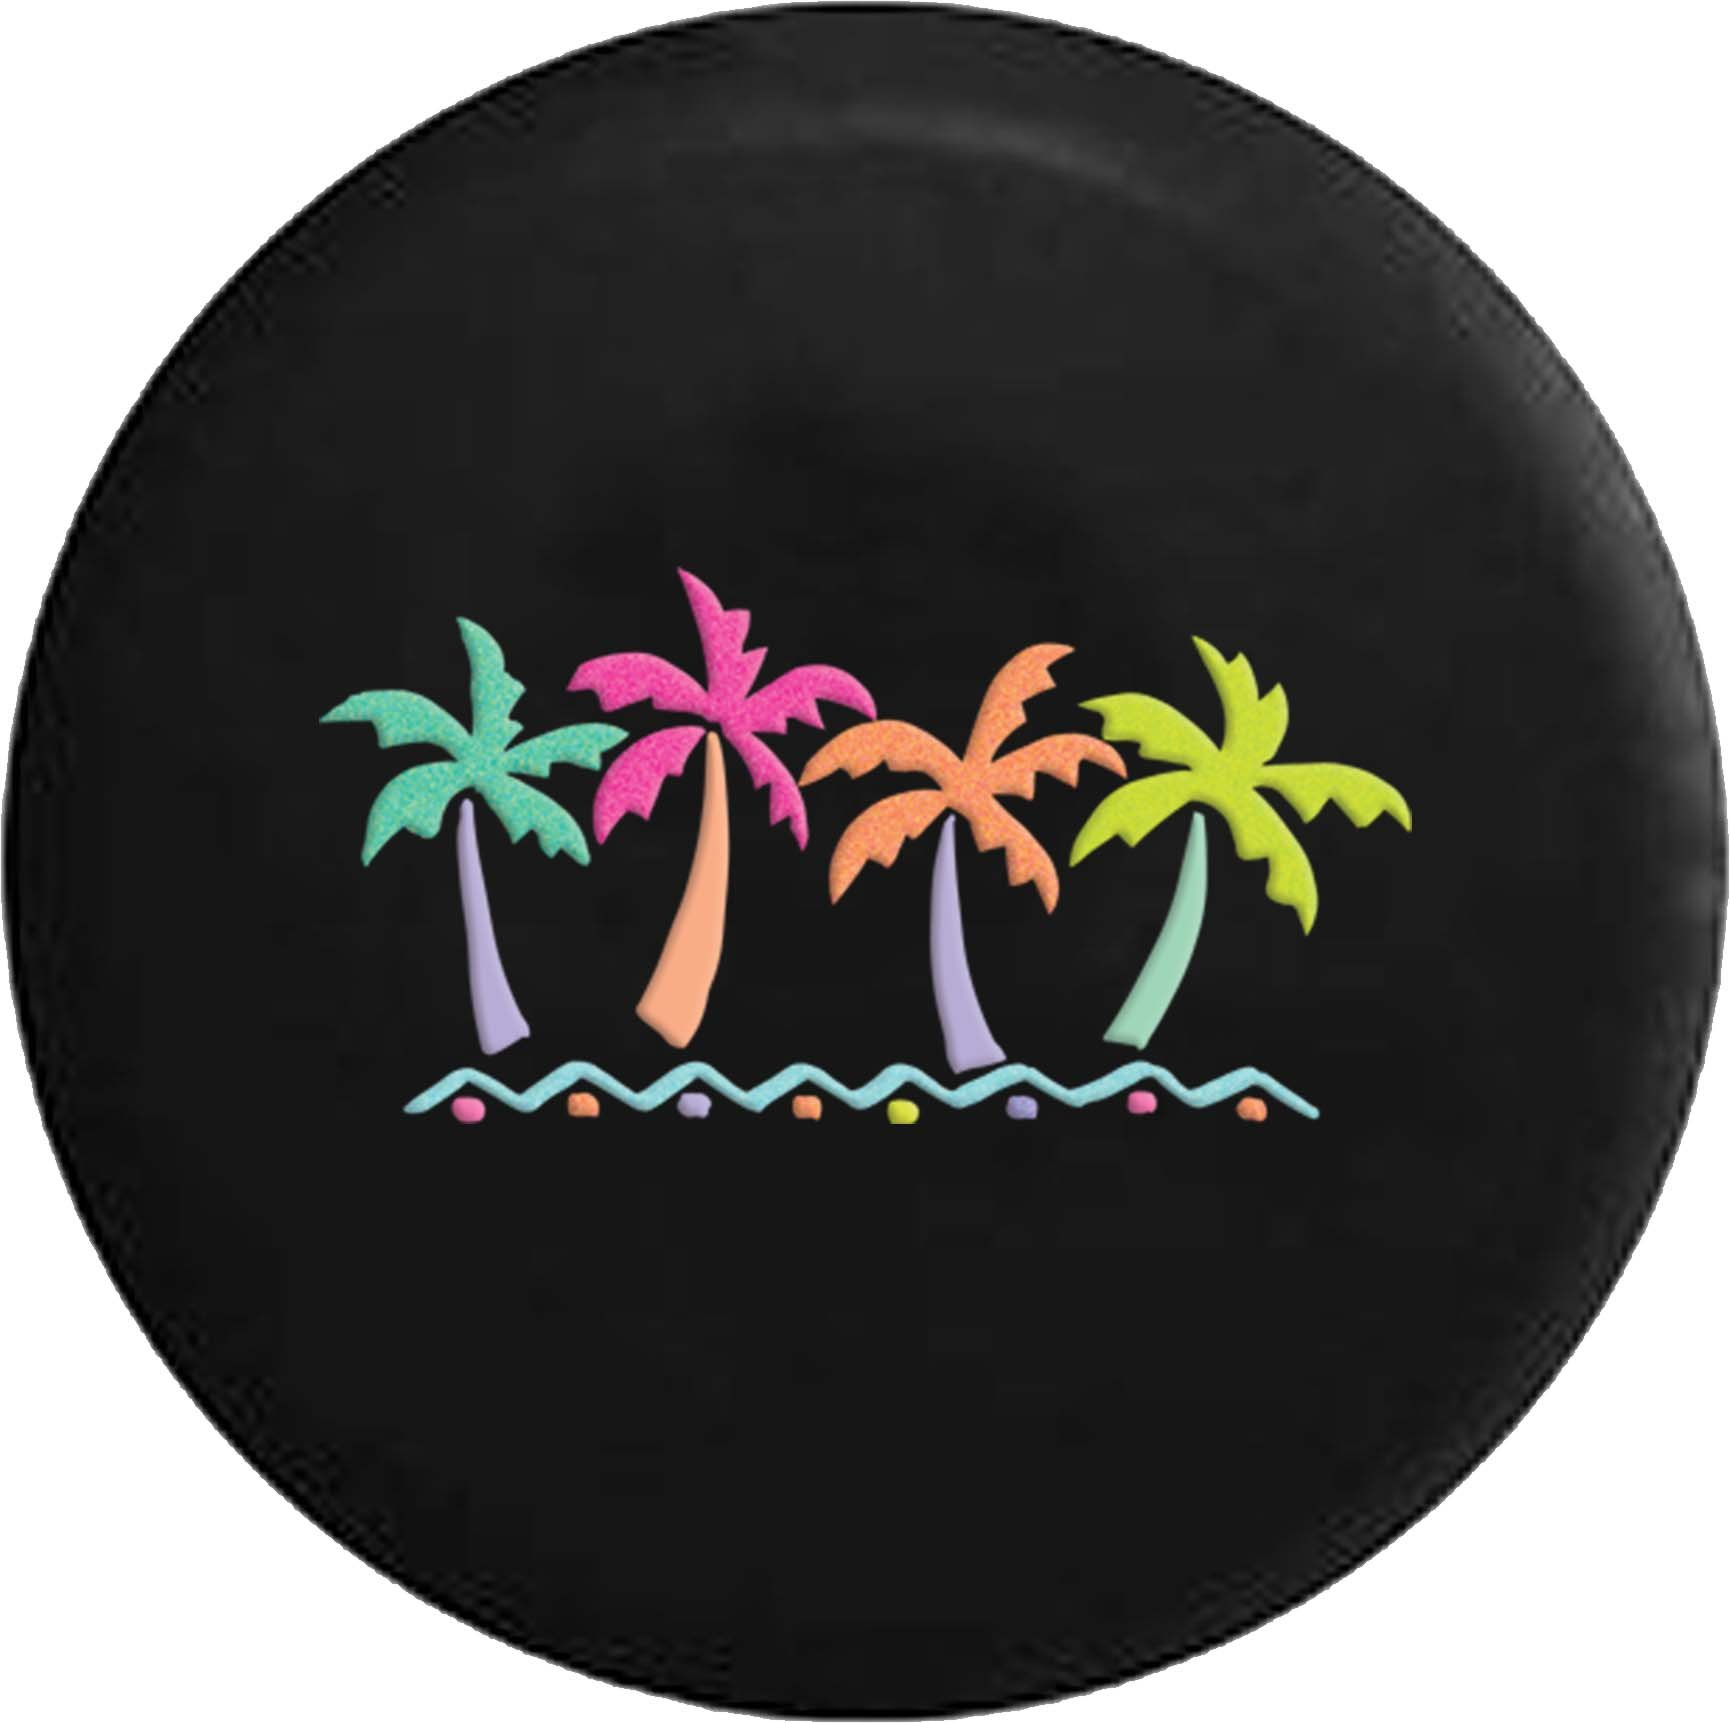 556 Gear Tropical Palm Trees in Simple Beach Vacation Jeep RV Spare Tire Cover Black 28 in